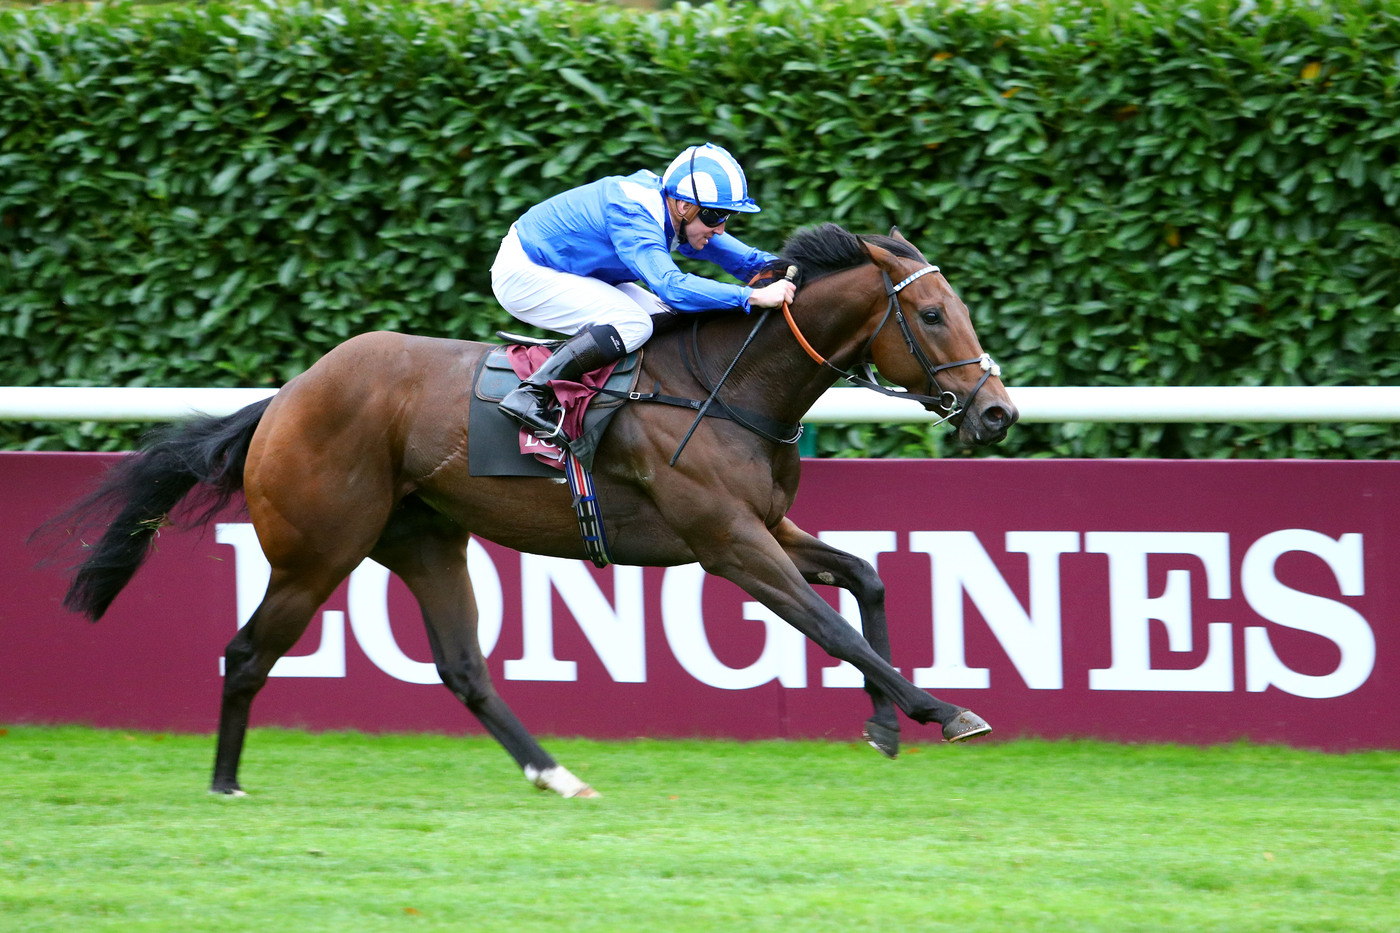 Longines Flat Racing Event: Longines' precision served the prestigious Qatar Prix de l'Arc de Triomphe 5